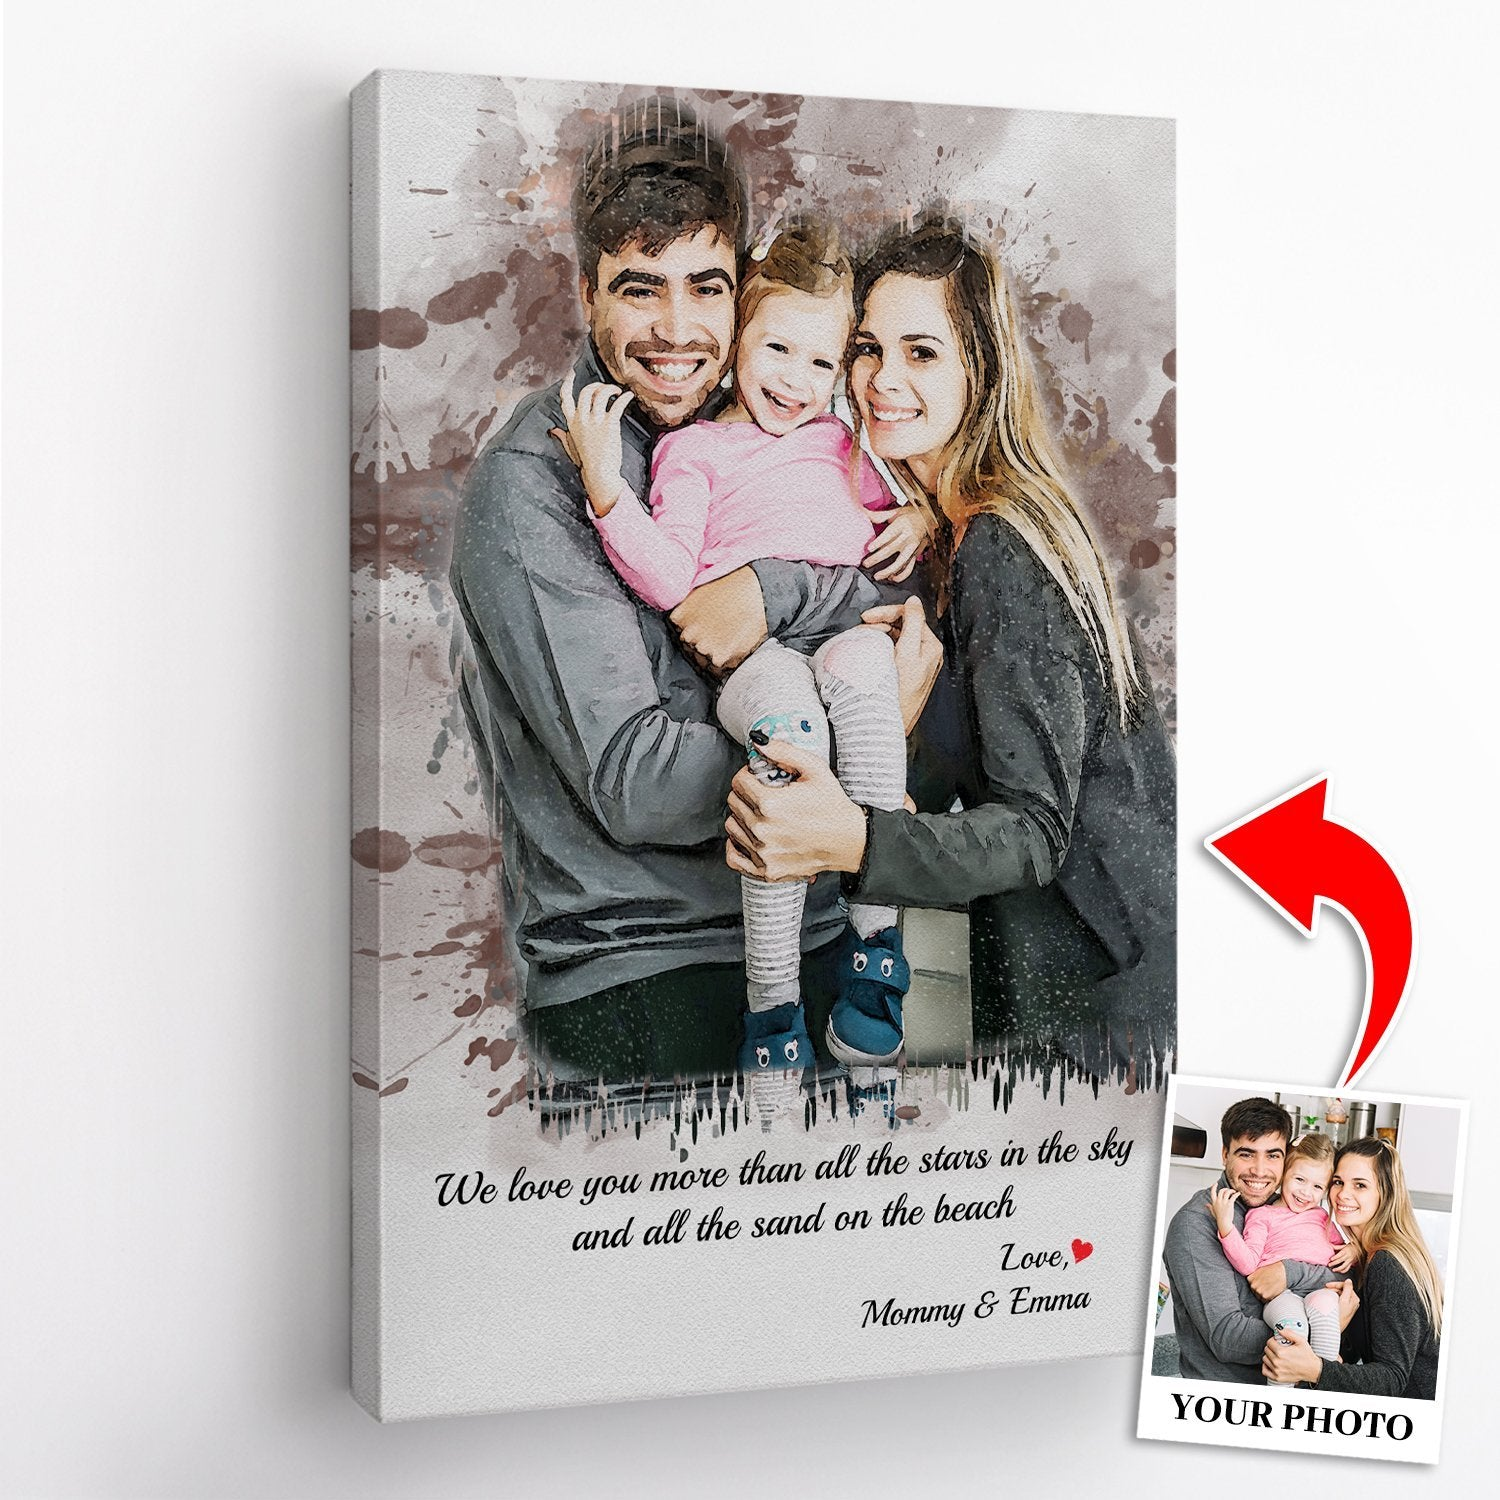 """The so-called """"Cool Dad"""" of yours already has everything he needs? I'm sure he will always open his arms and appreciate everything you want him to have. Just send us your favorite photo of him and we will customize it in watercolor style. Let's make this Father's Day the best day ever for him!"""